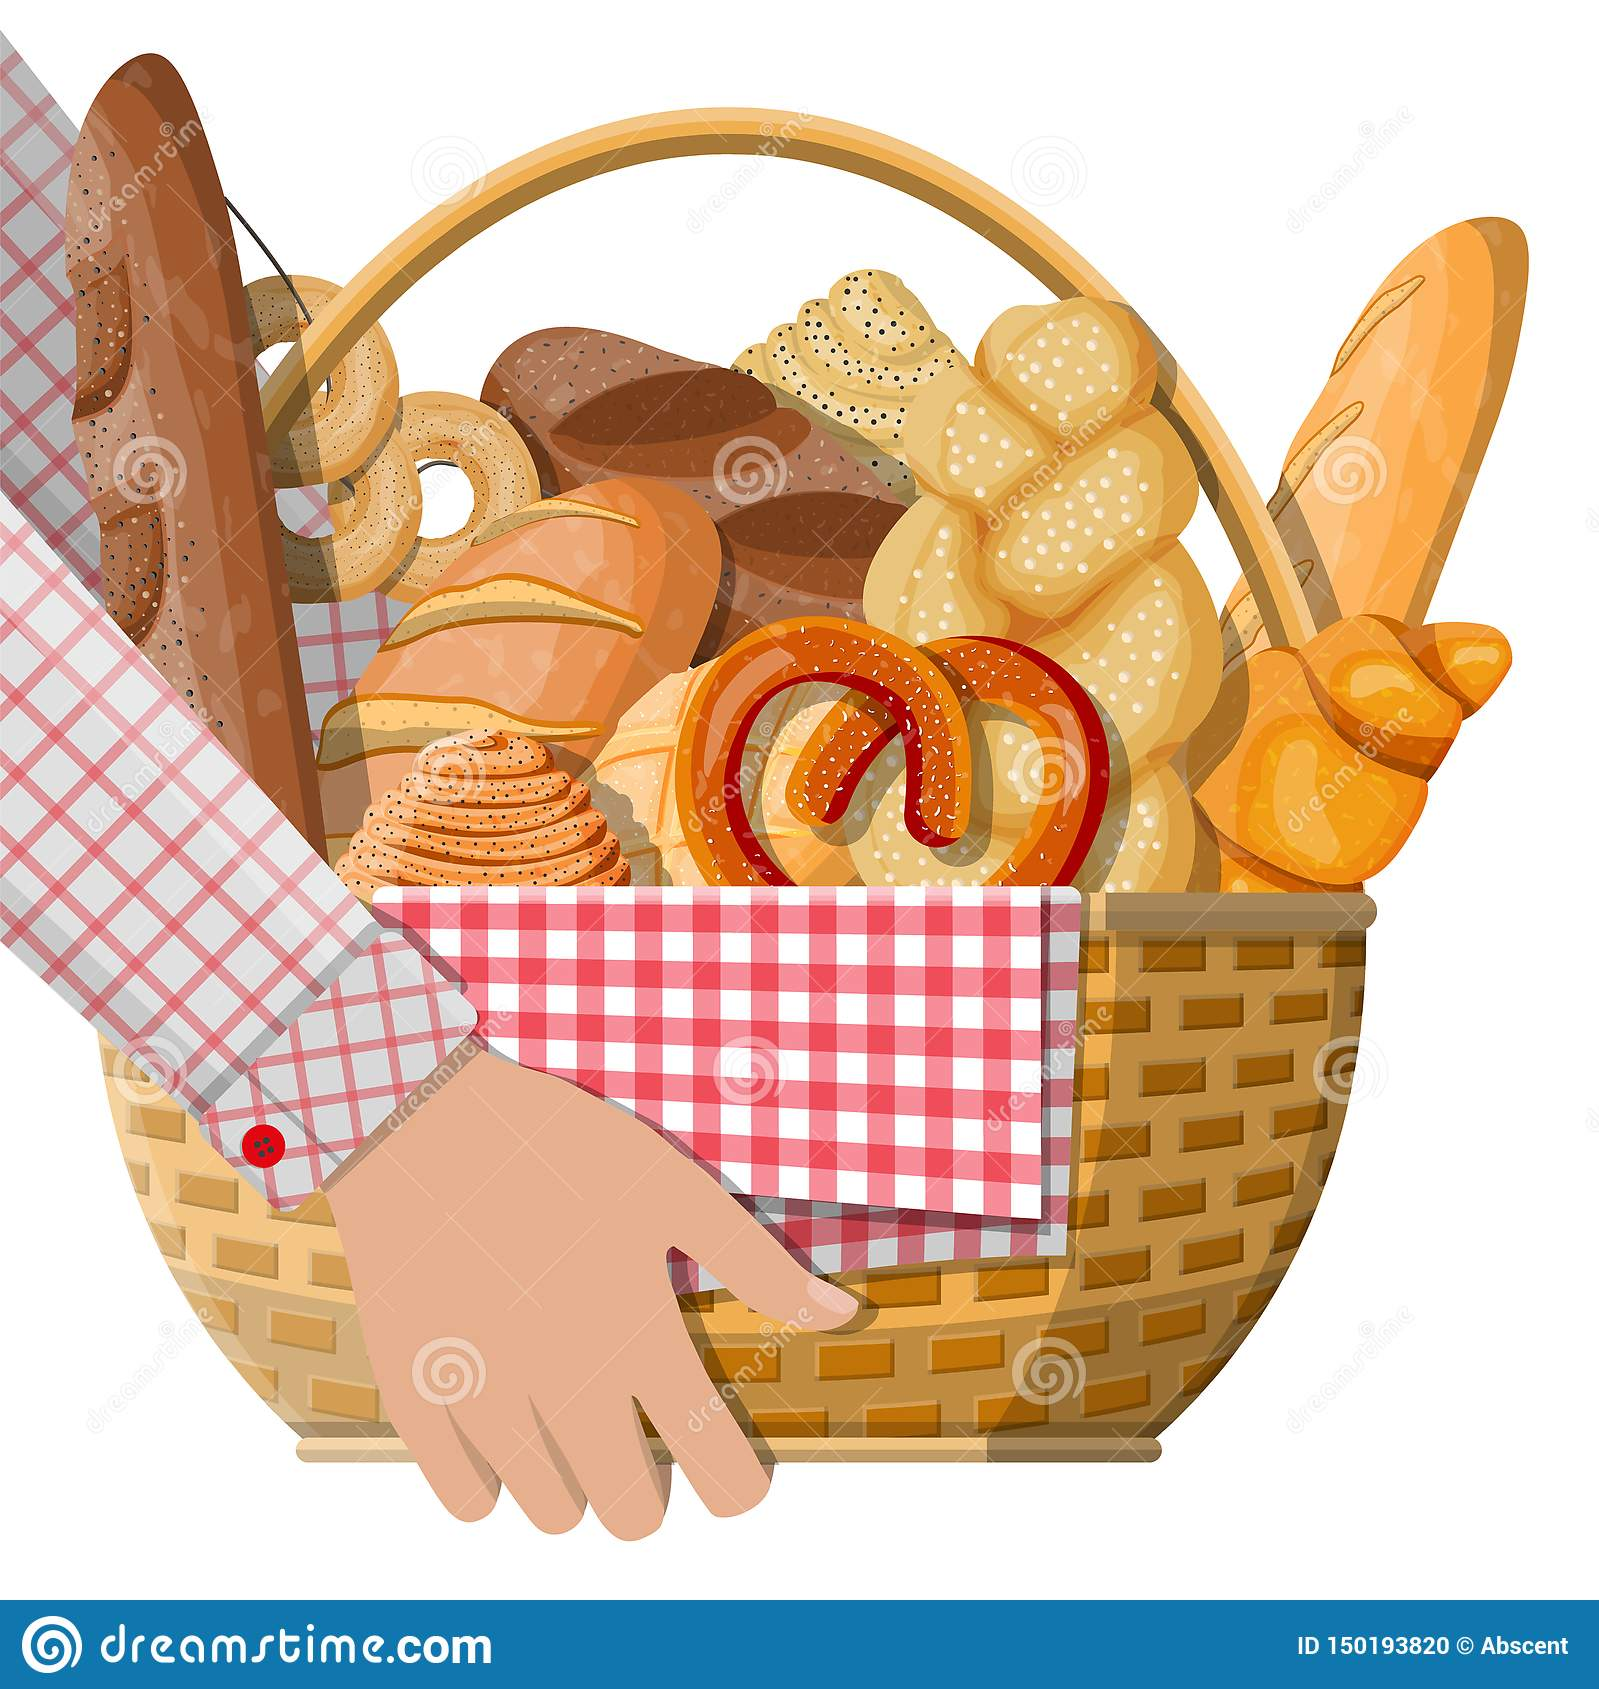 Bread icons and wicker basket in hand.